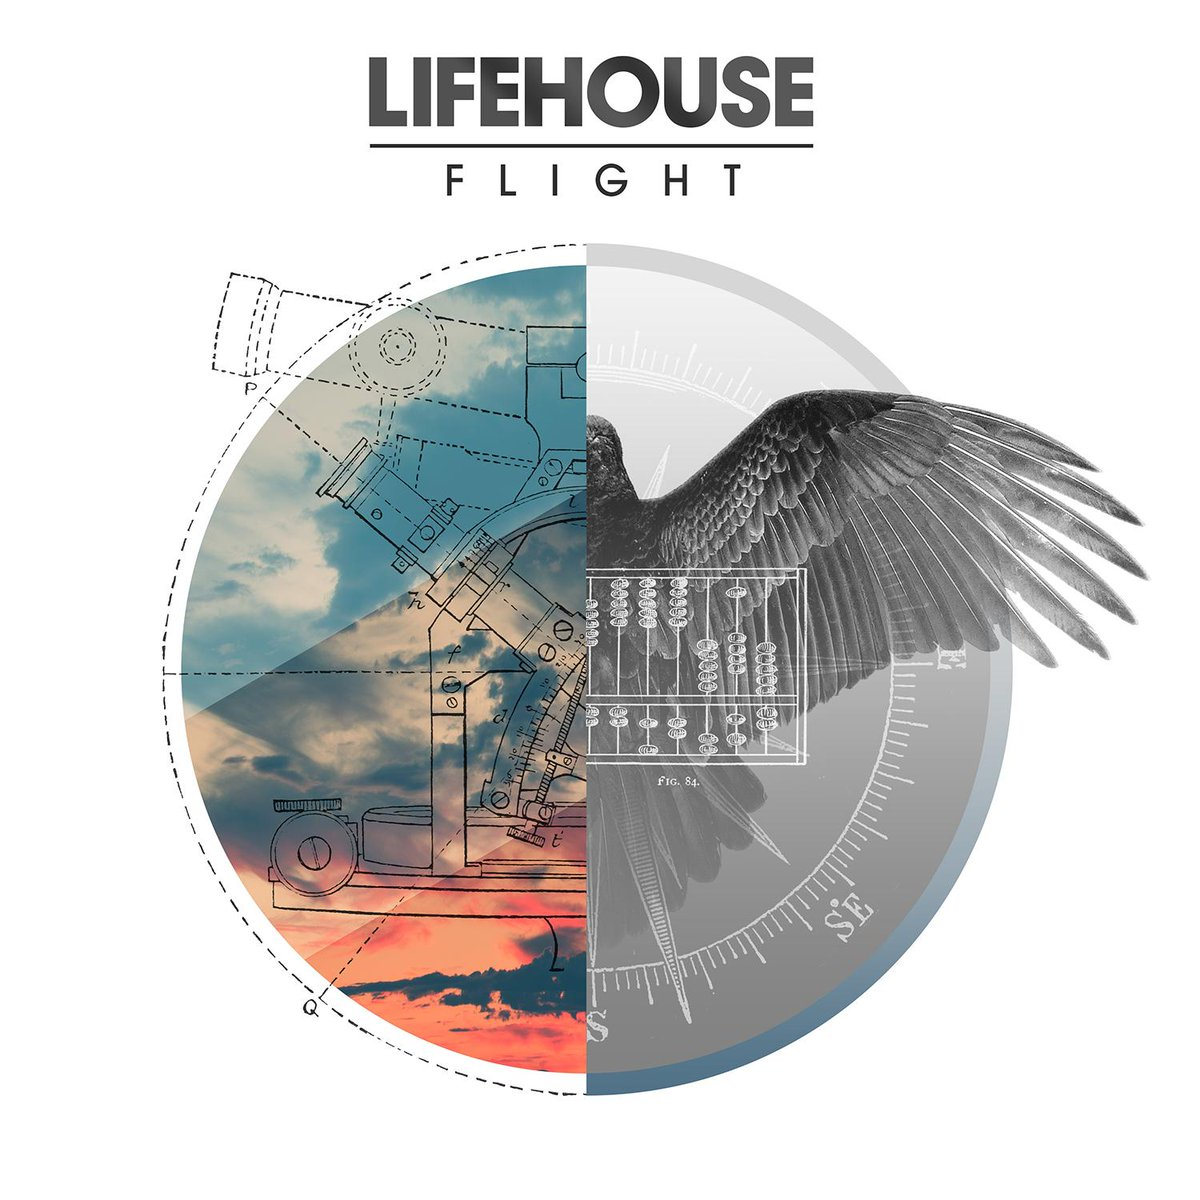 Ok, no more teases! You guessed it - we have a new track #Flight coming next week & a sneak peek for you tomorrow. ;) http://t.co/fjFVLWITYR